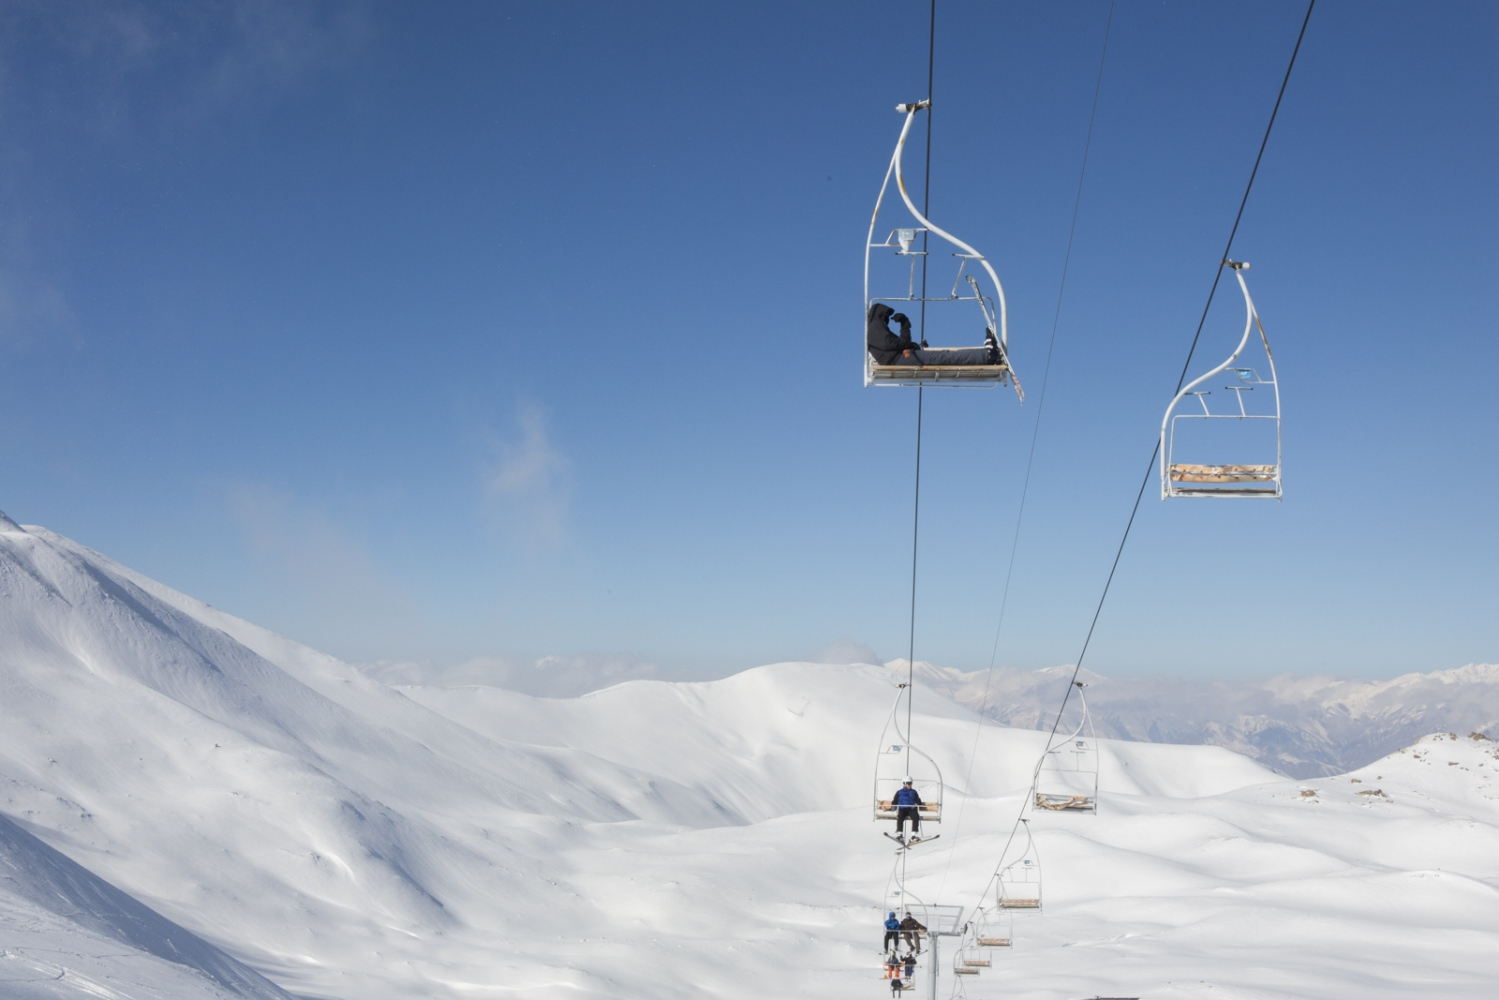 Skiers go up Tochal's slope on a chair lift. Alborz Mountains, North of Tehran. December 29, 2014